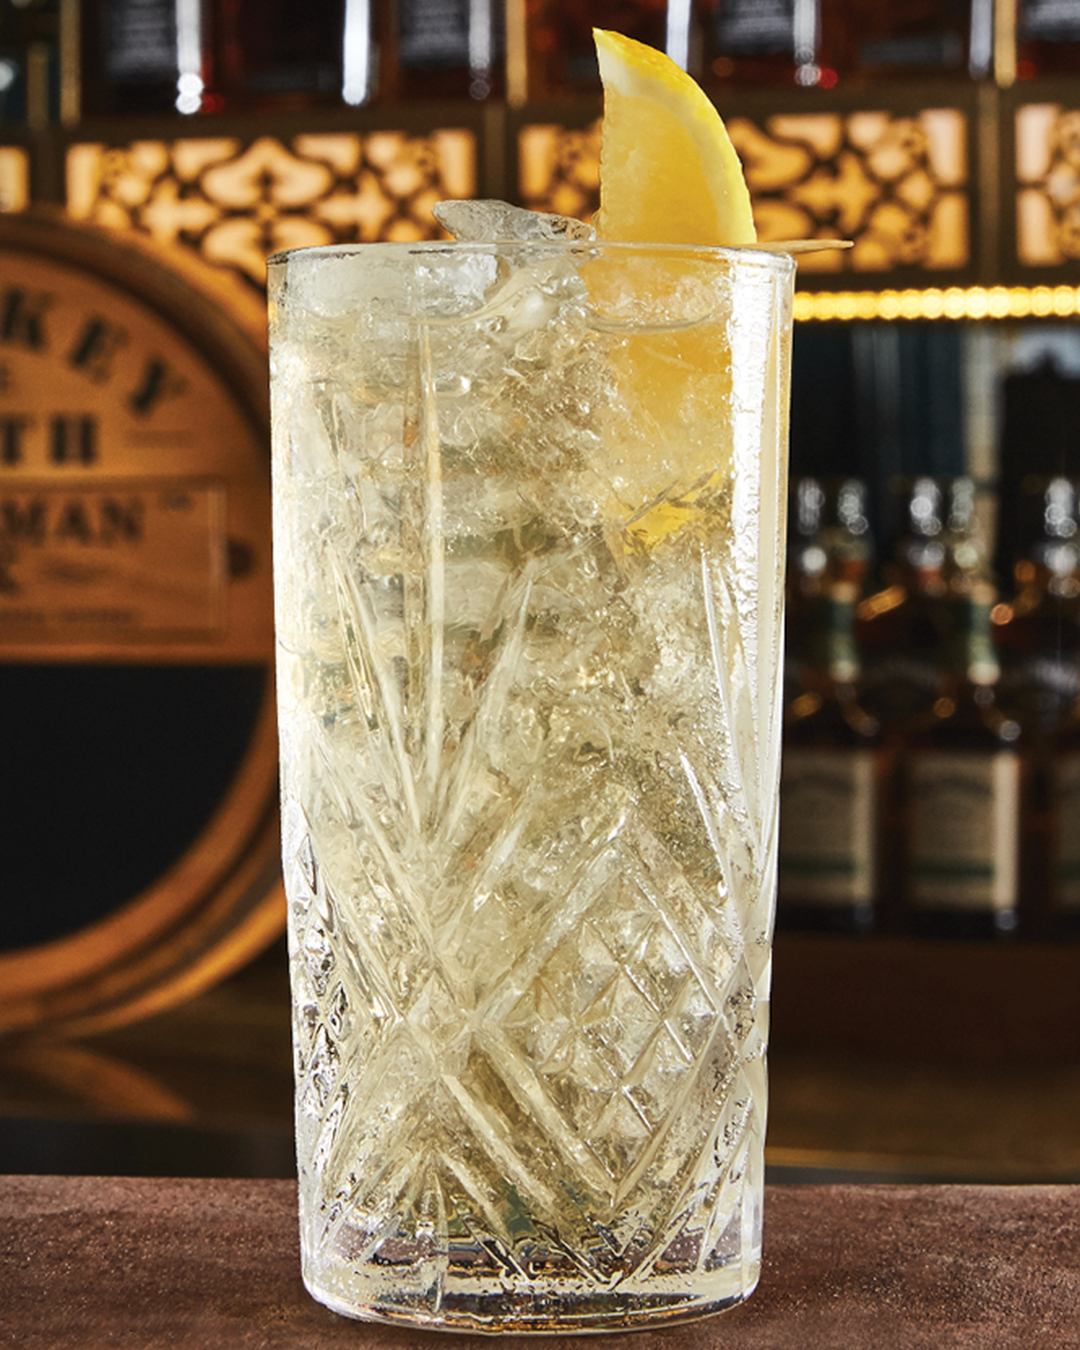 A Gentleman's Highball garnished with a lemon wedge on a bar.